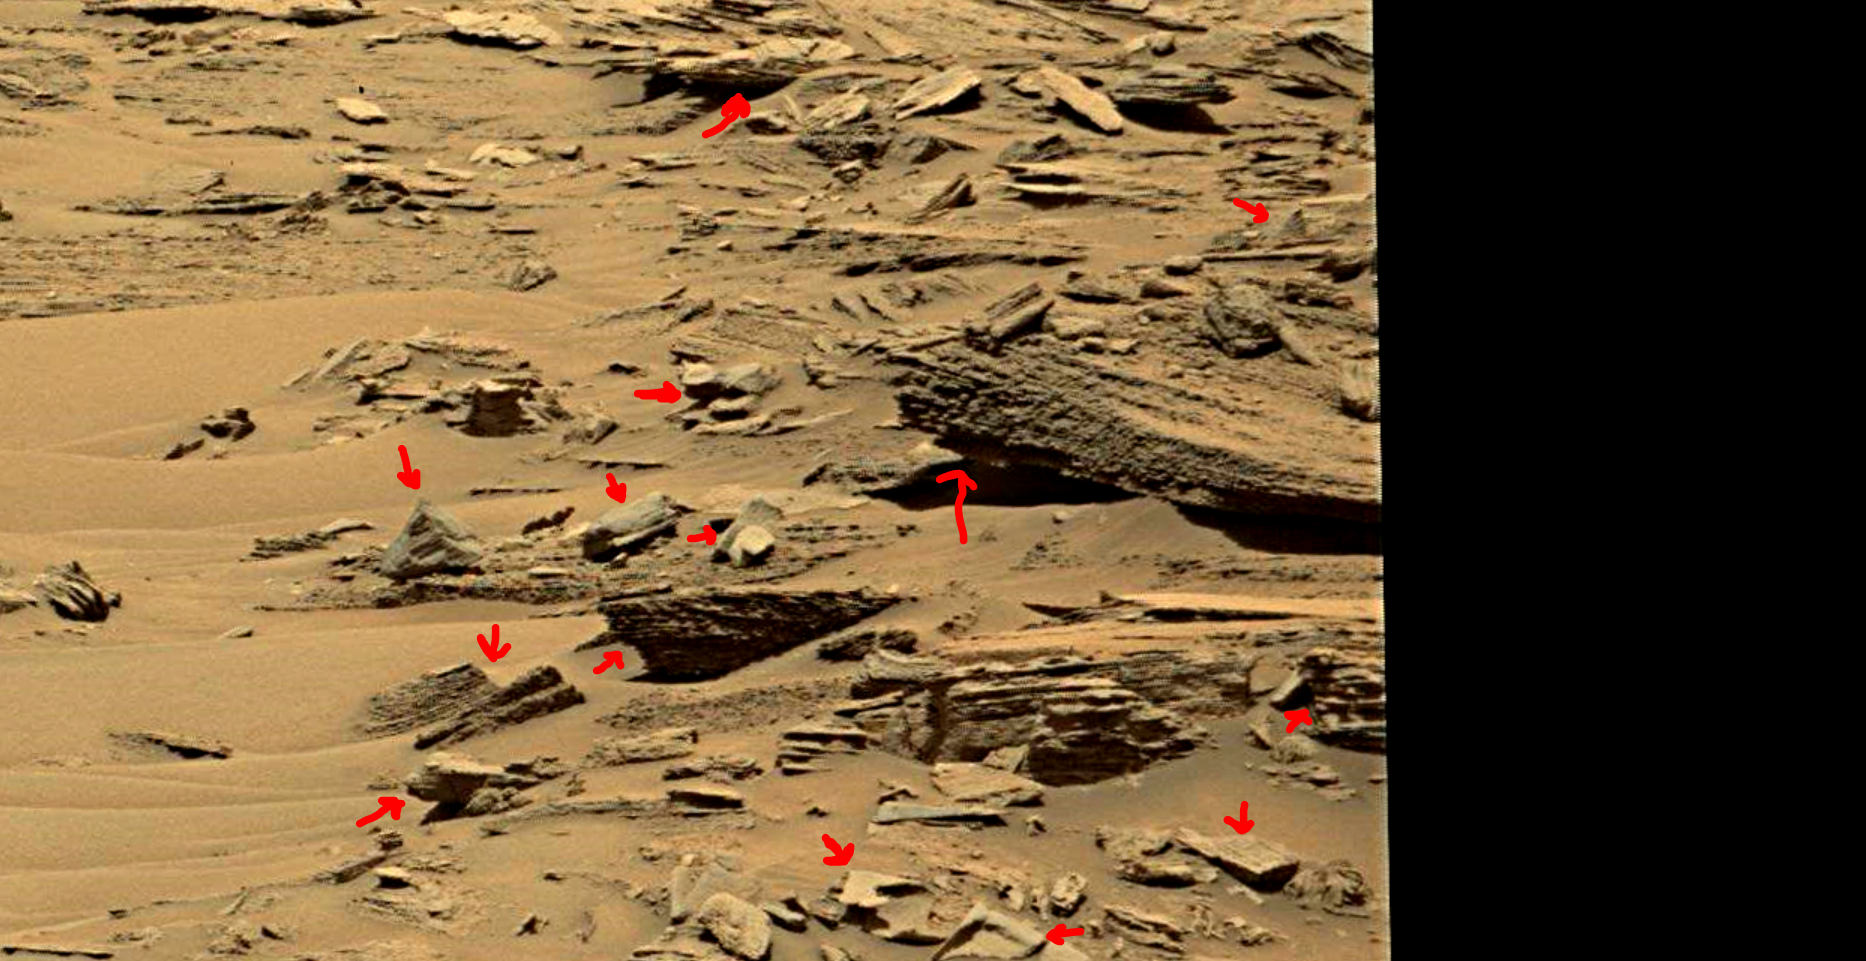 mars sol 1353 anomaly-artifacts 6a was life on mars